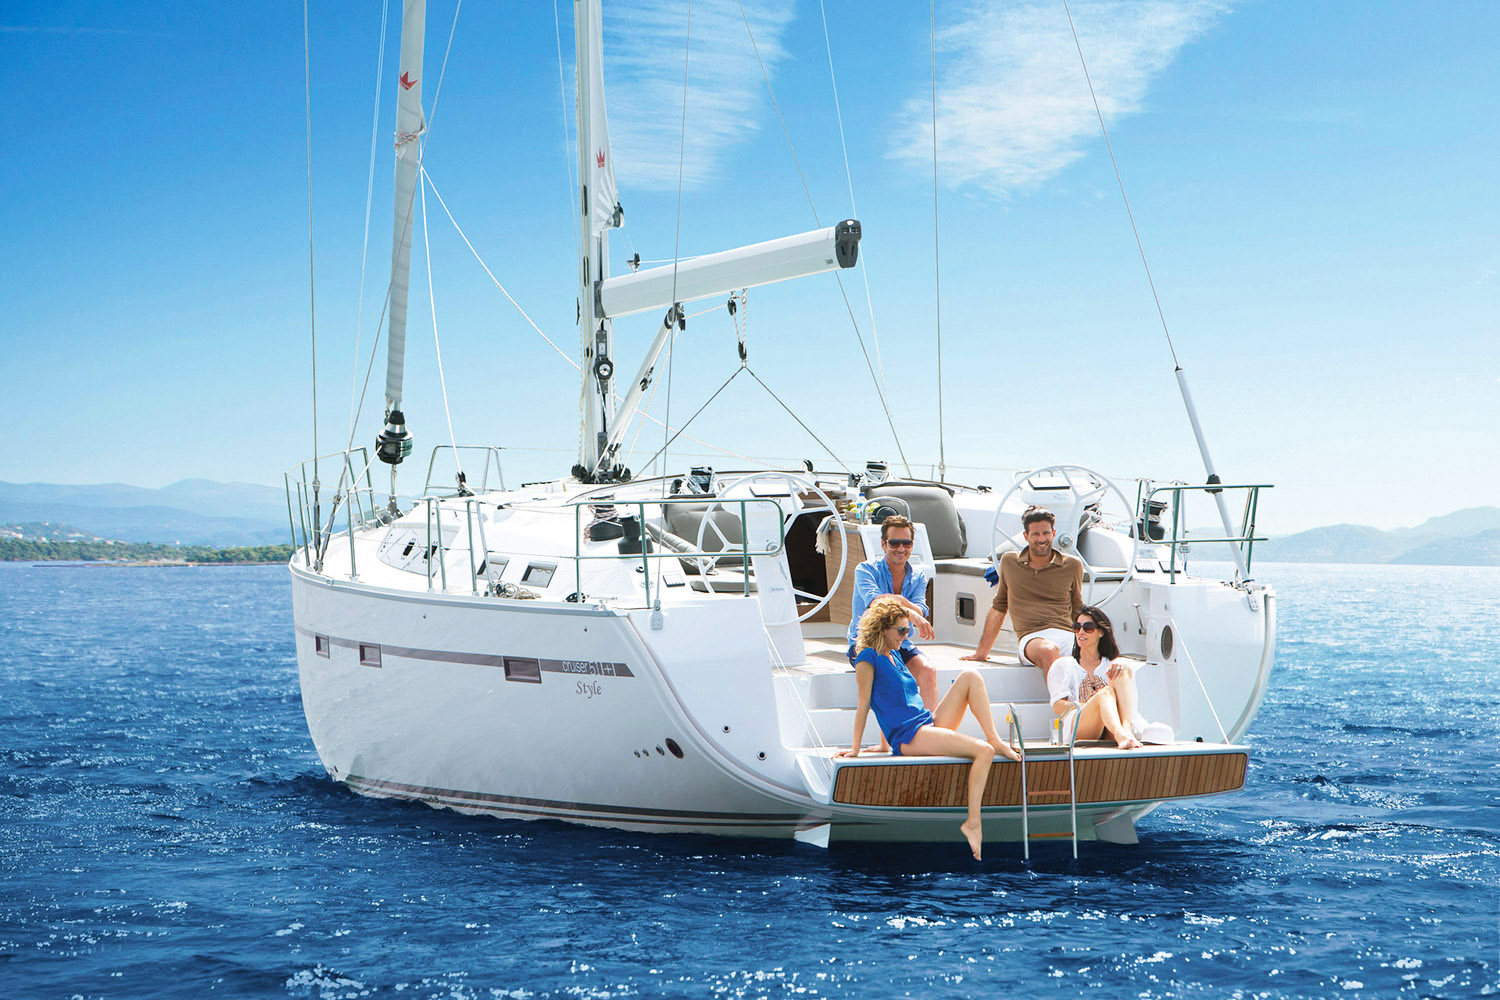 About Pitter Yachtcharter